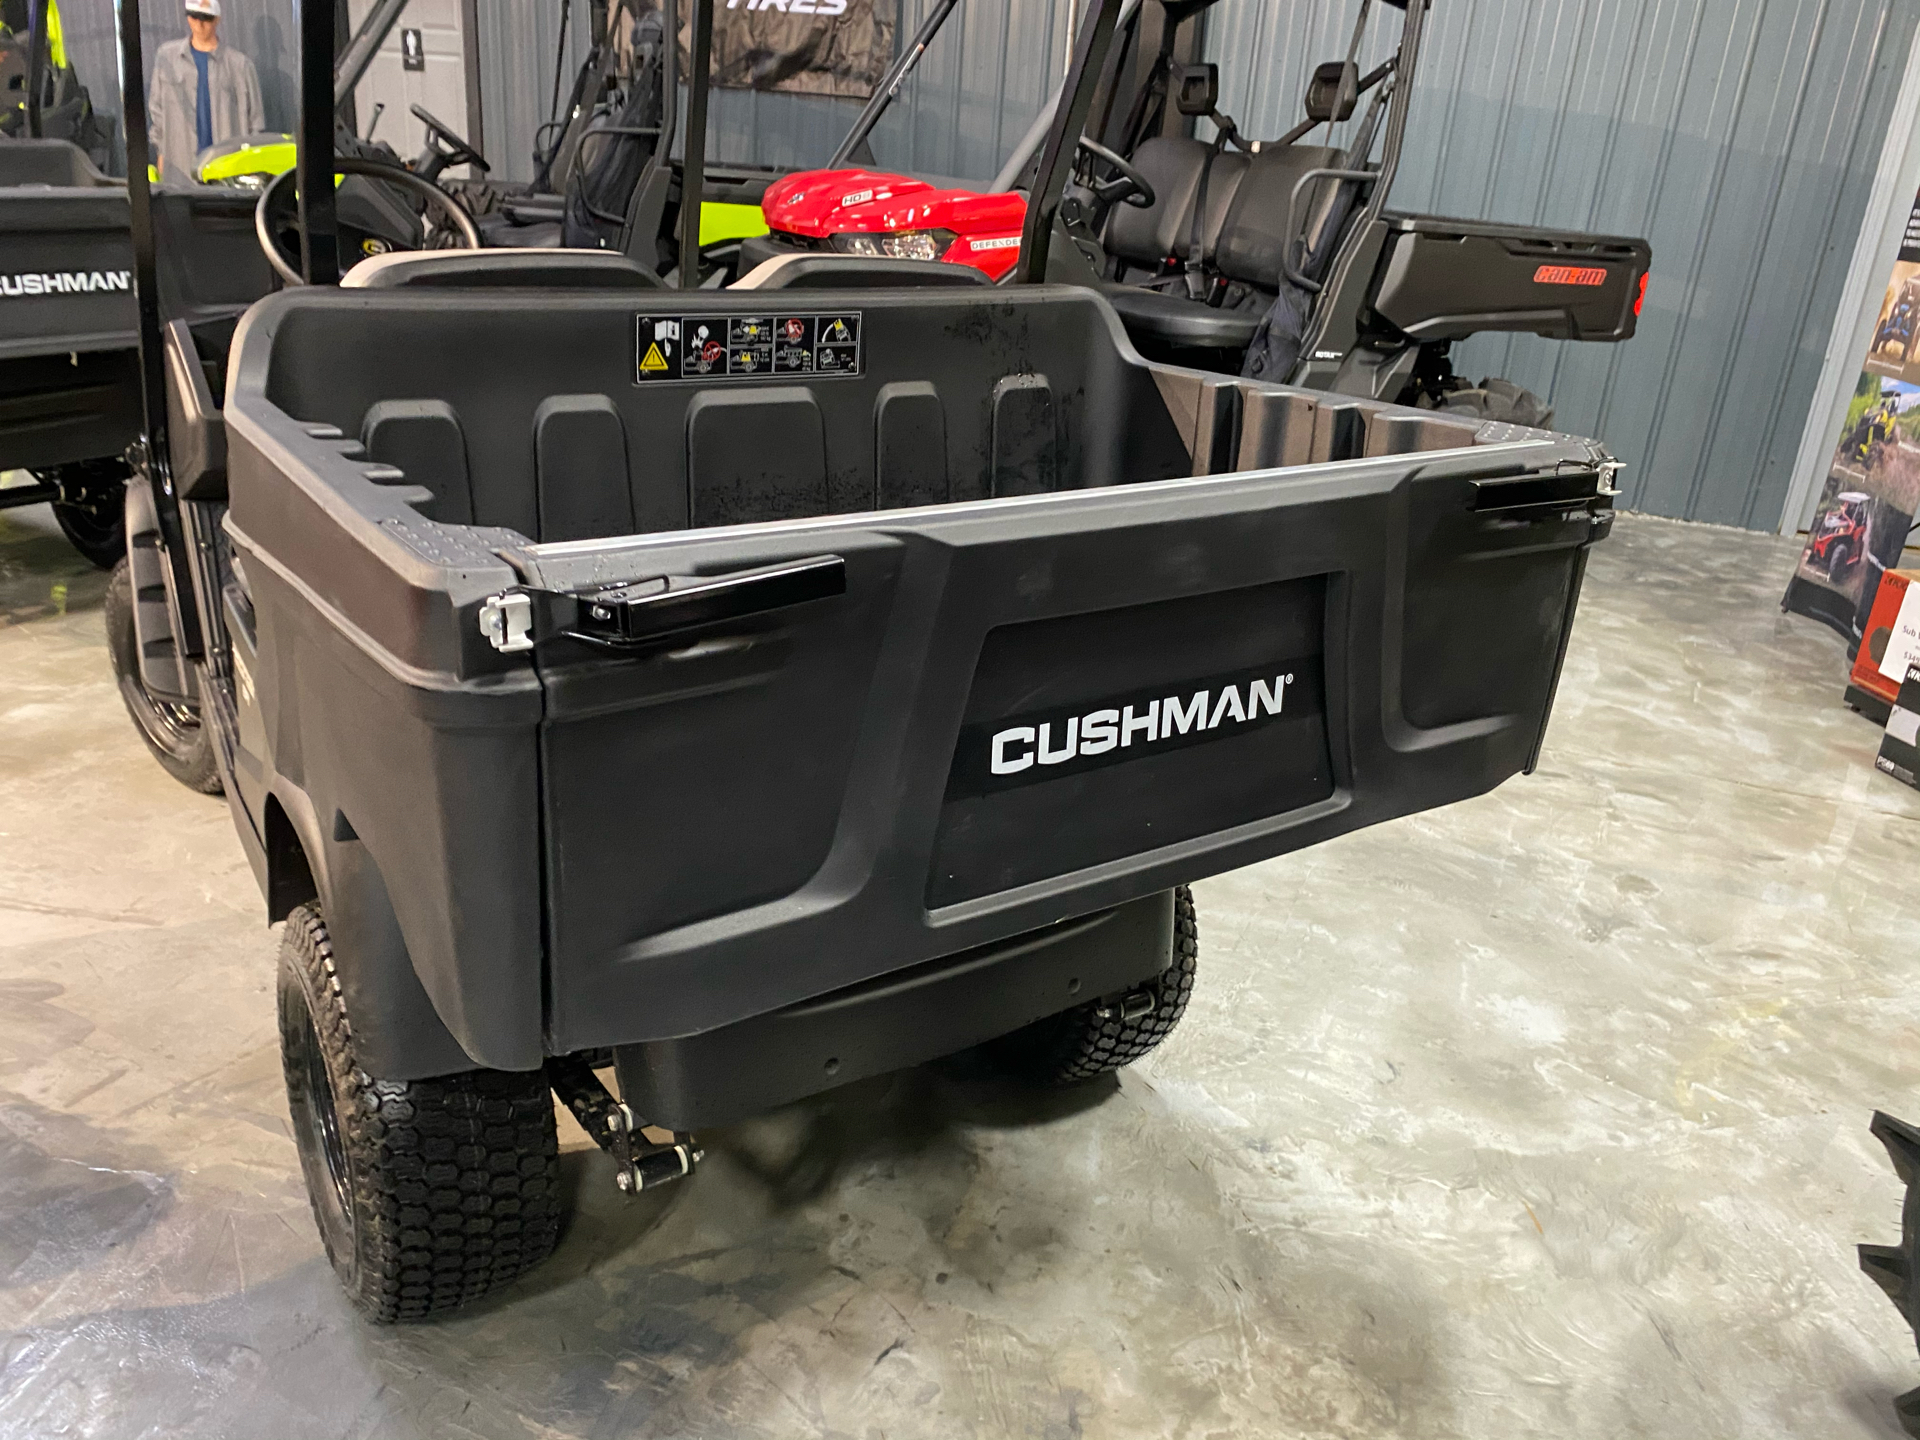 2021 Cushman Hauler 800X EFI Gas in Douglas, Georgia - Photo 6